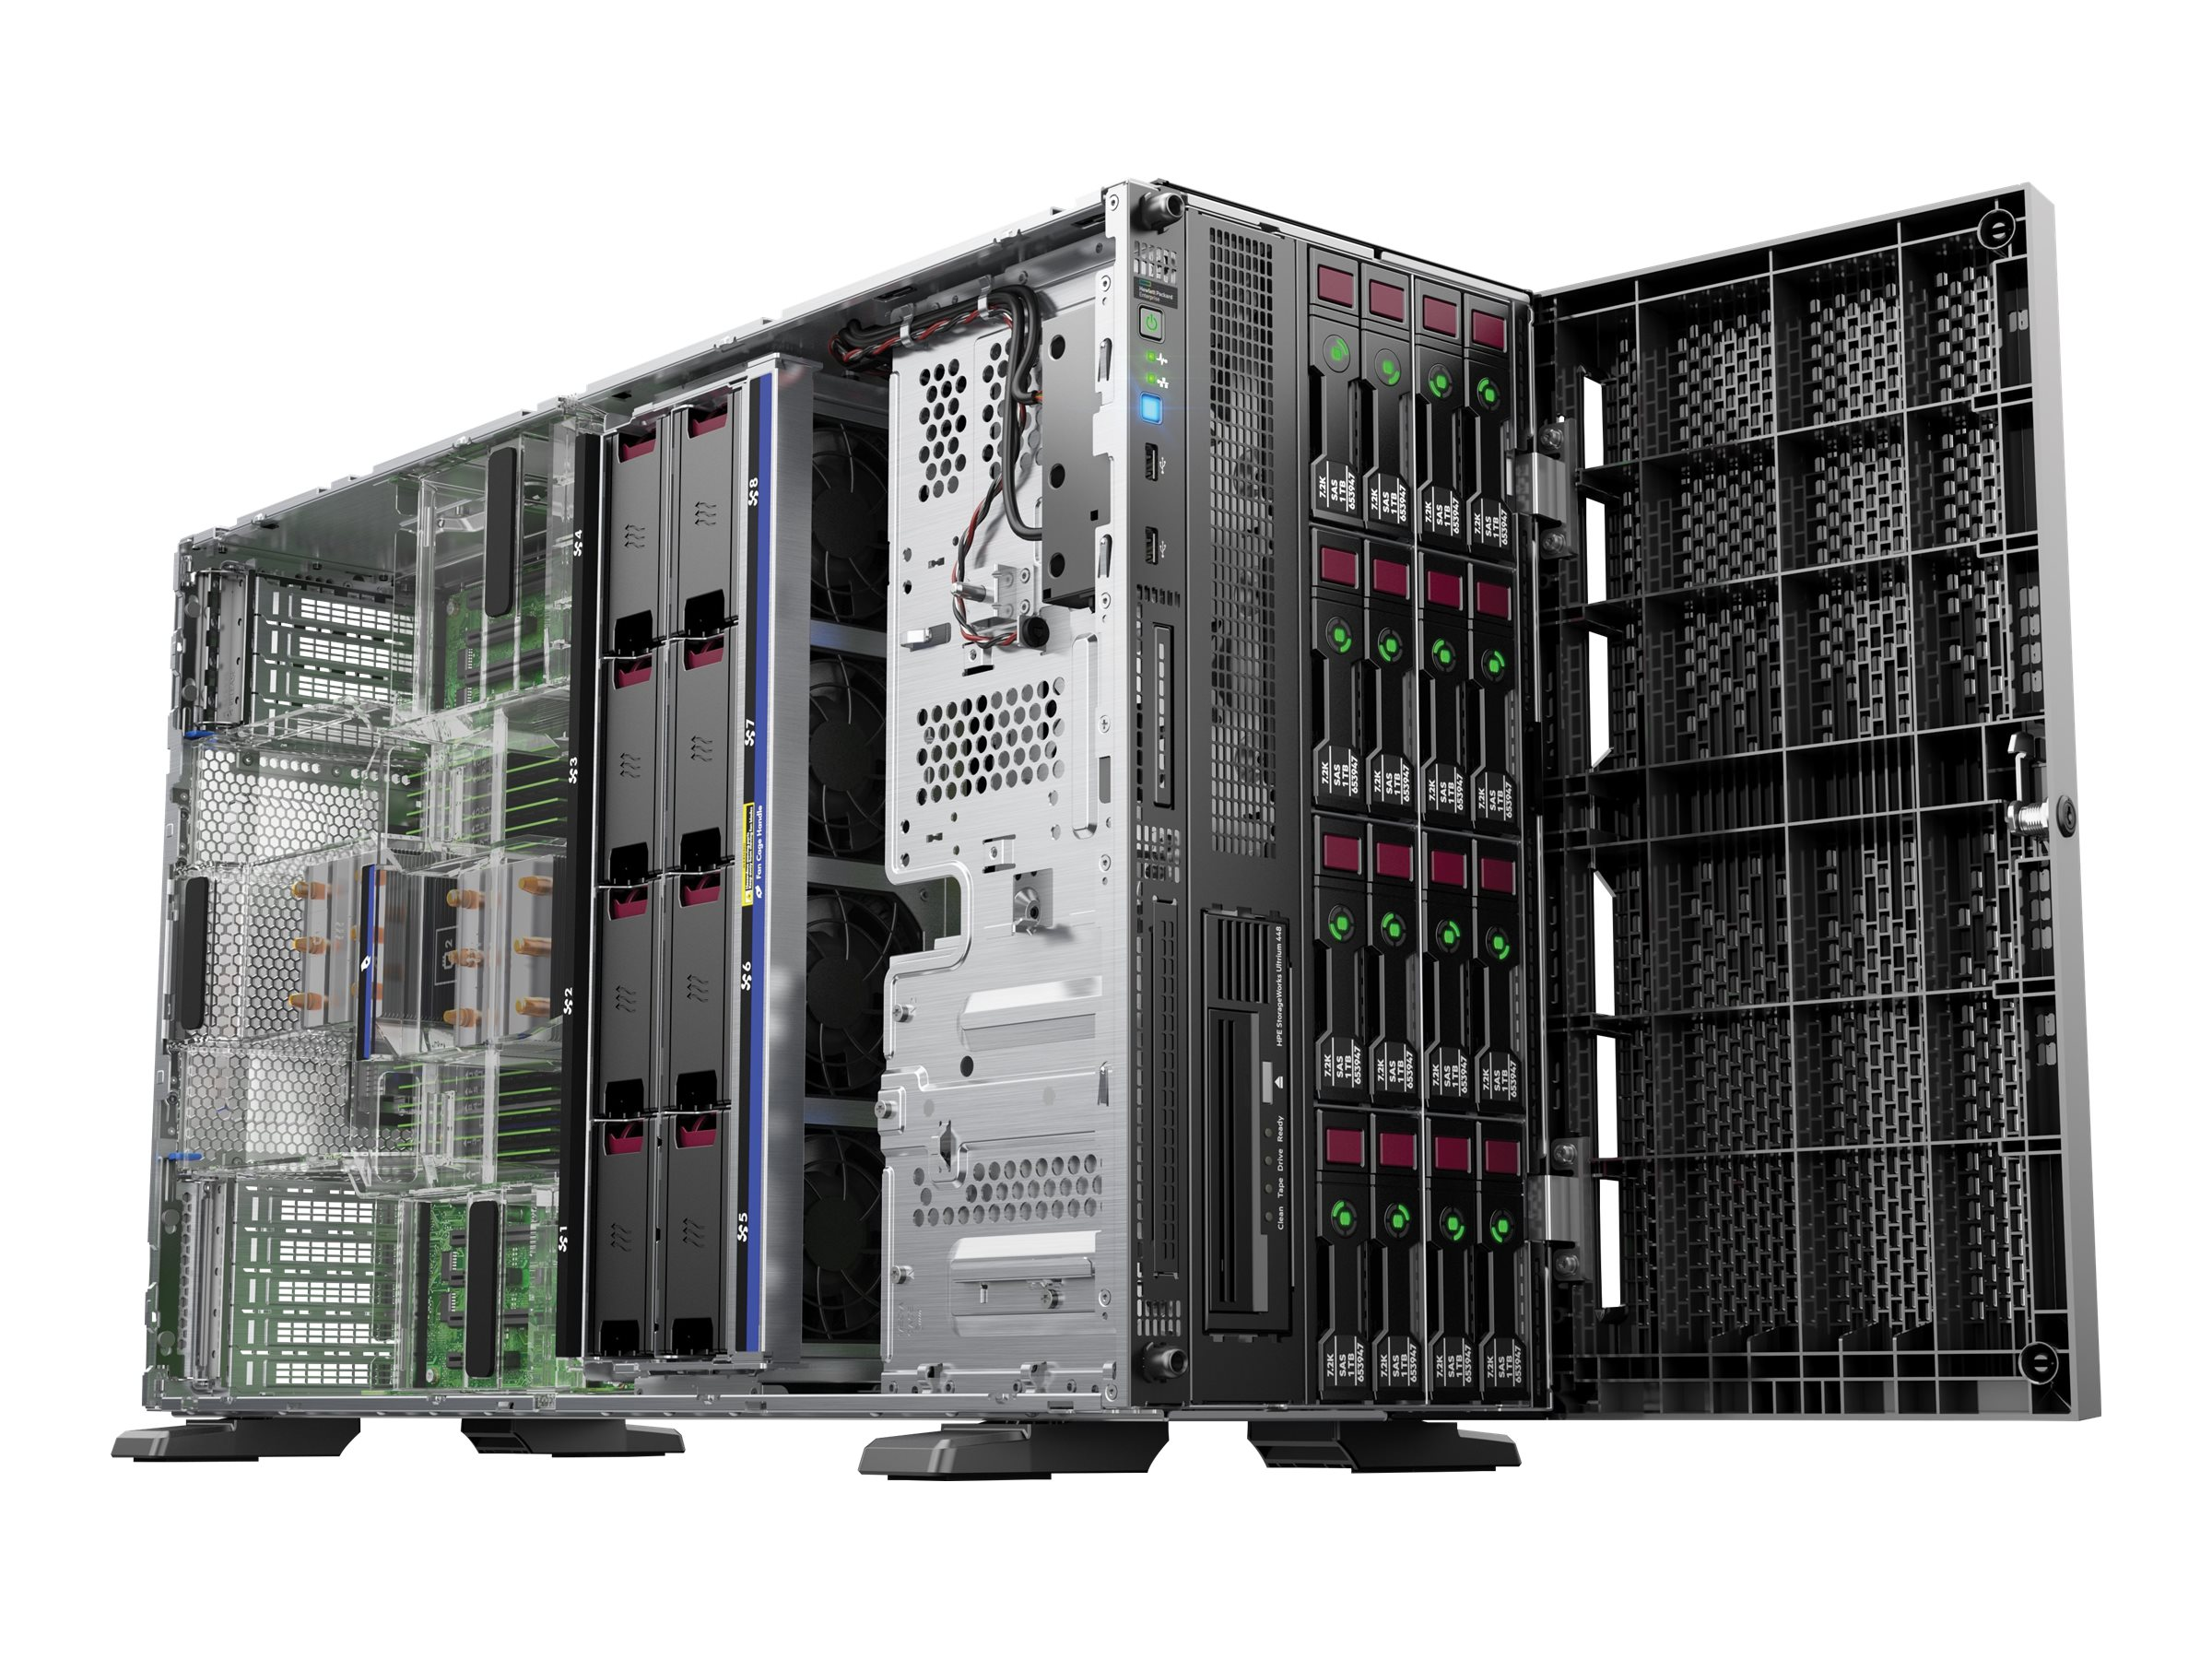 HPE ProLiant ML350 Gen9 Base - Server - Tower - 5U - zweiweg - 1 x Xeon E5-2620V3 / 2.4 GHz